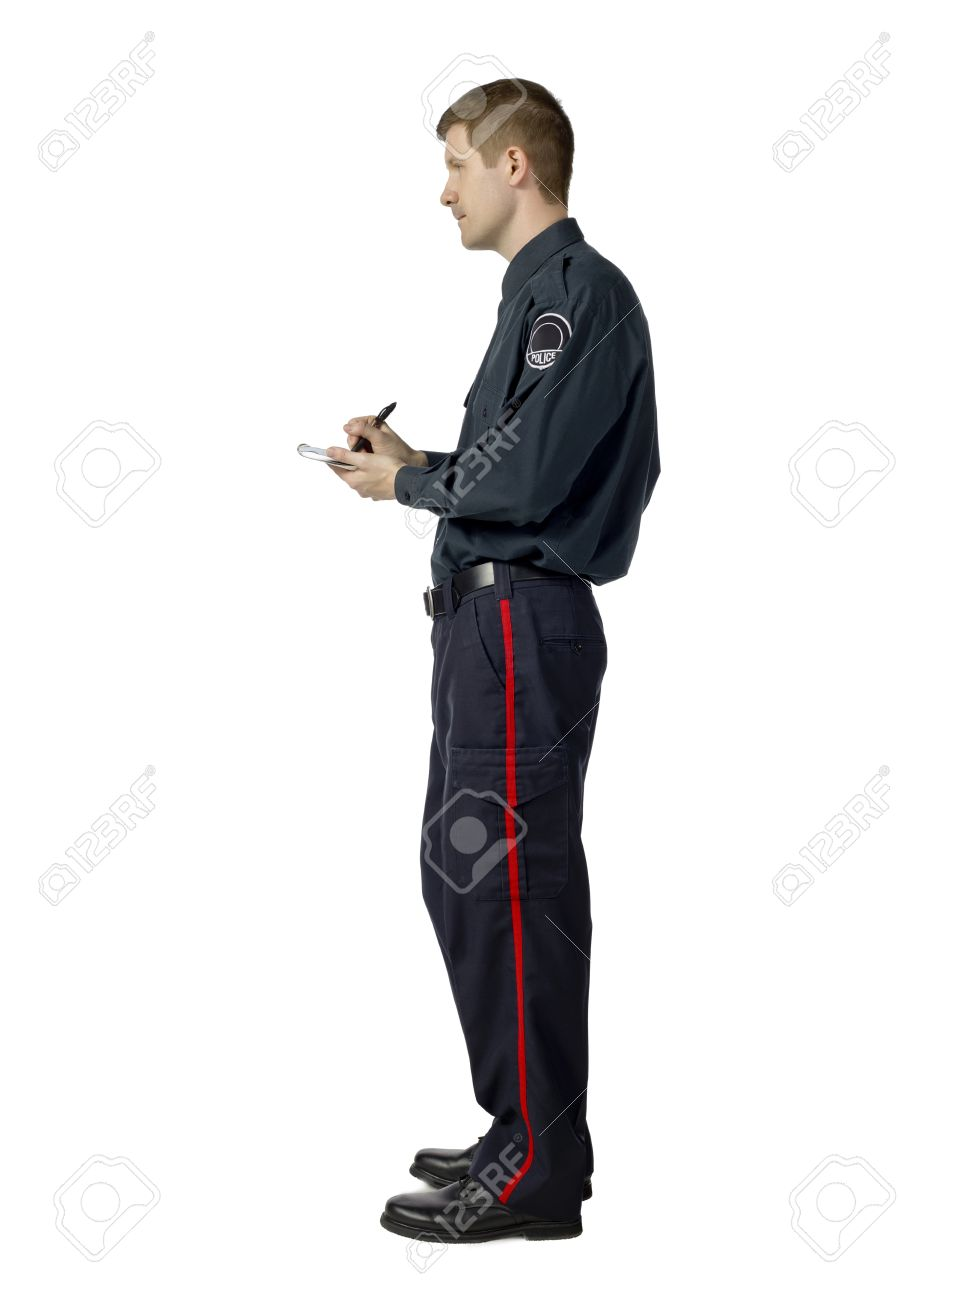 Side view image of a police officer writing notes against the white background Stock Photo - 17084131